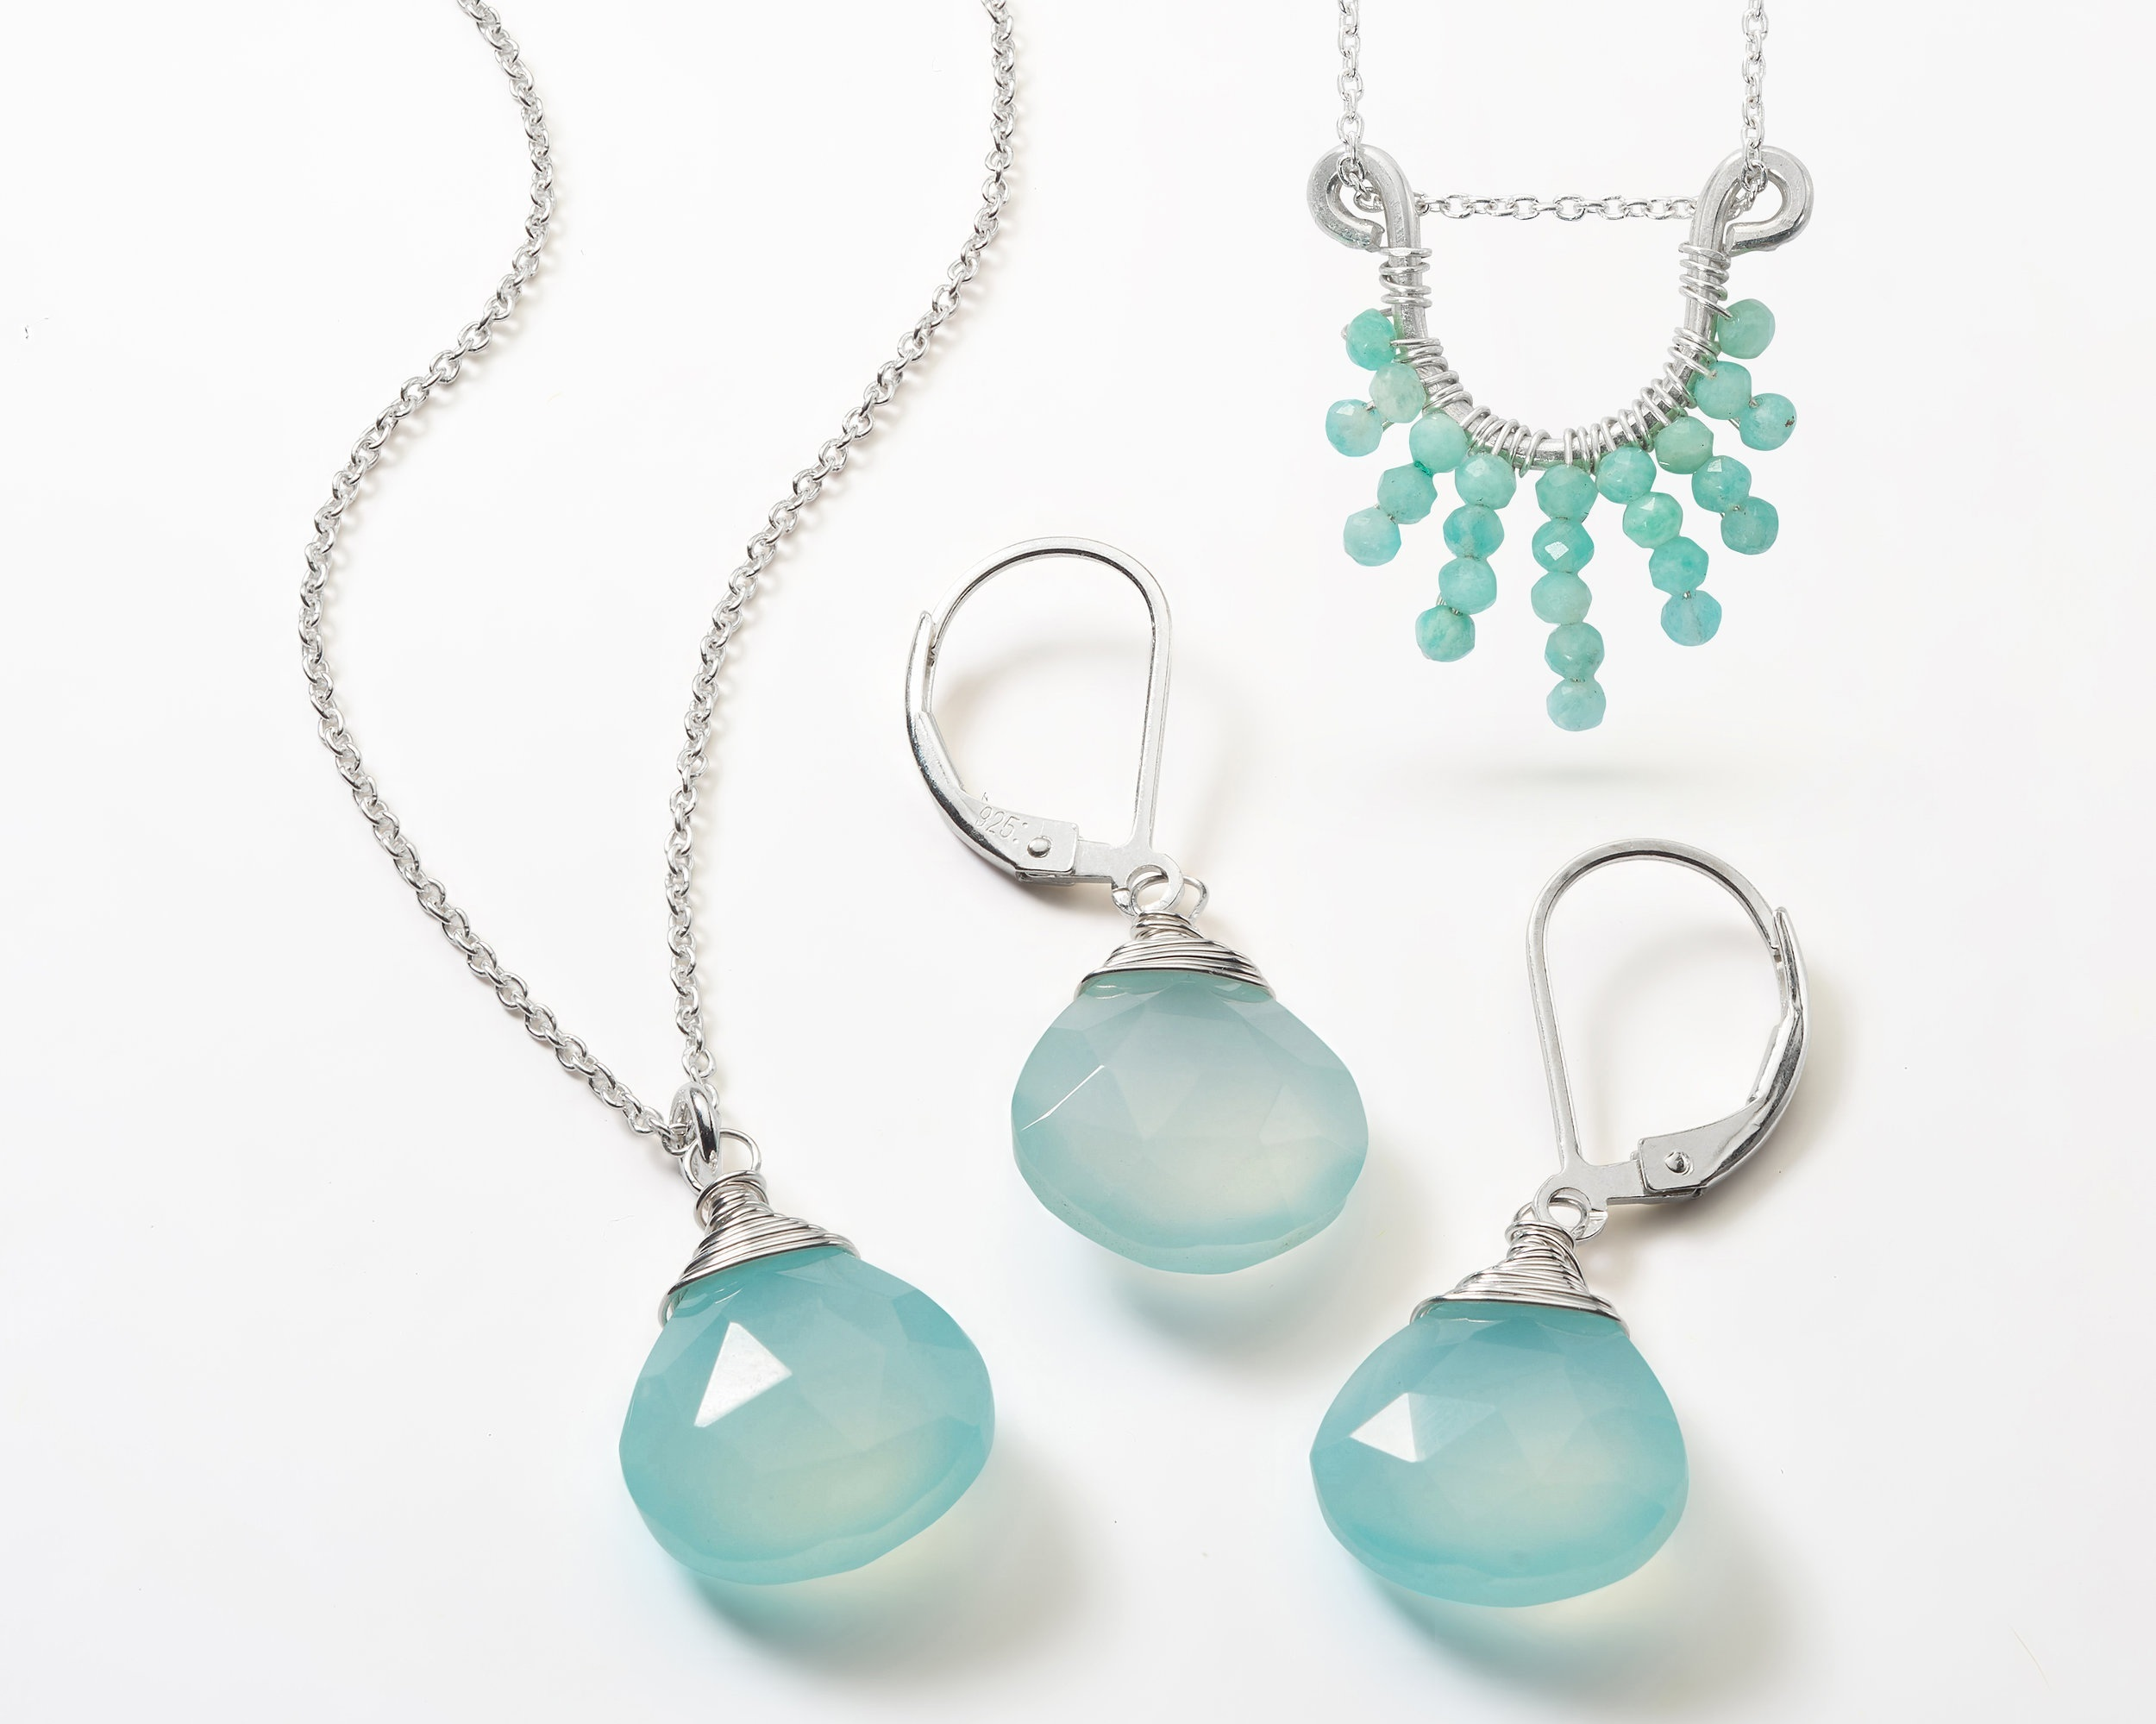 Chalcedony and Amazonite Jewelry